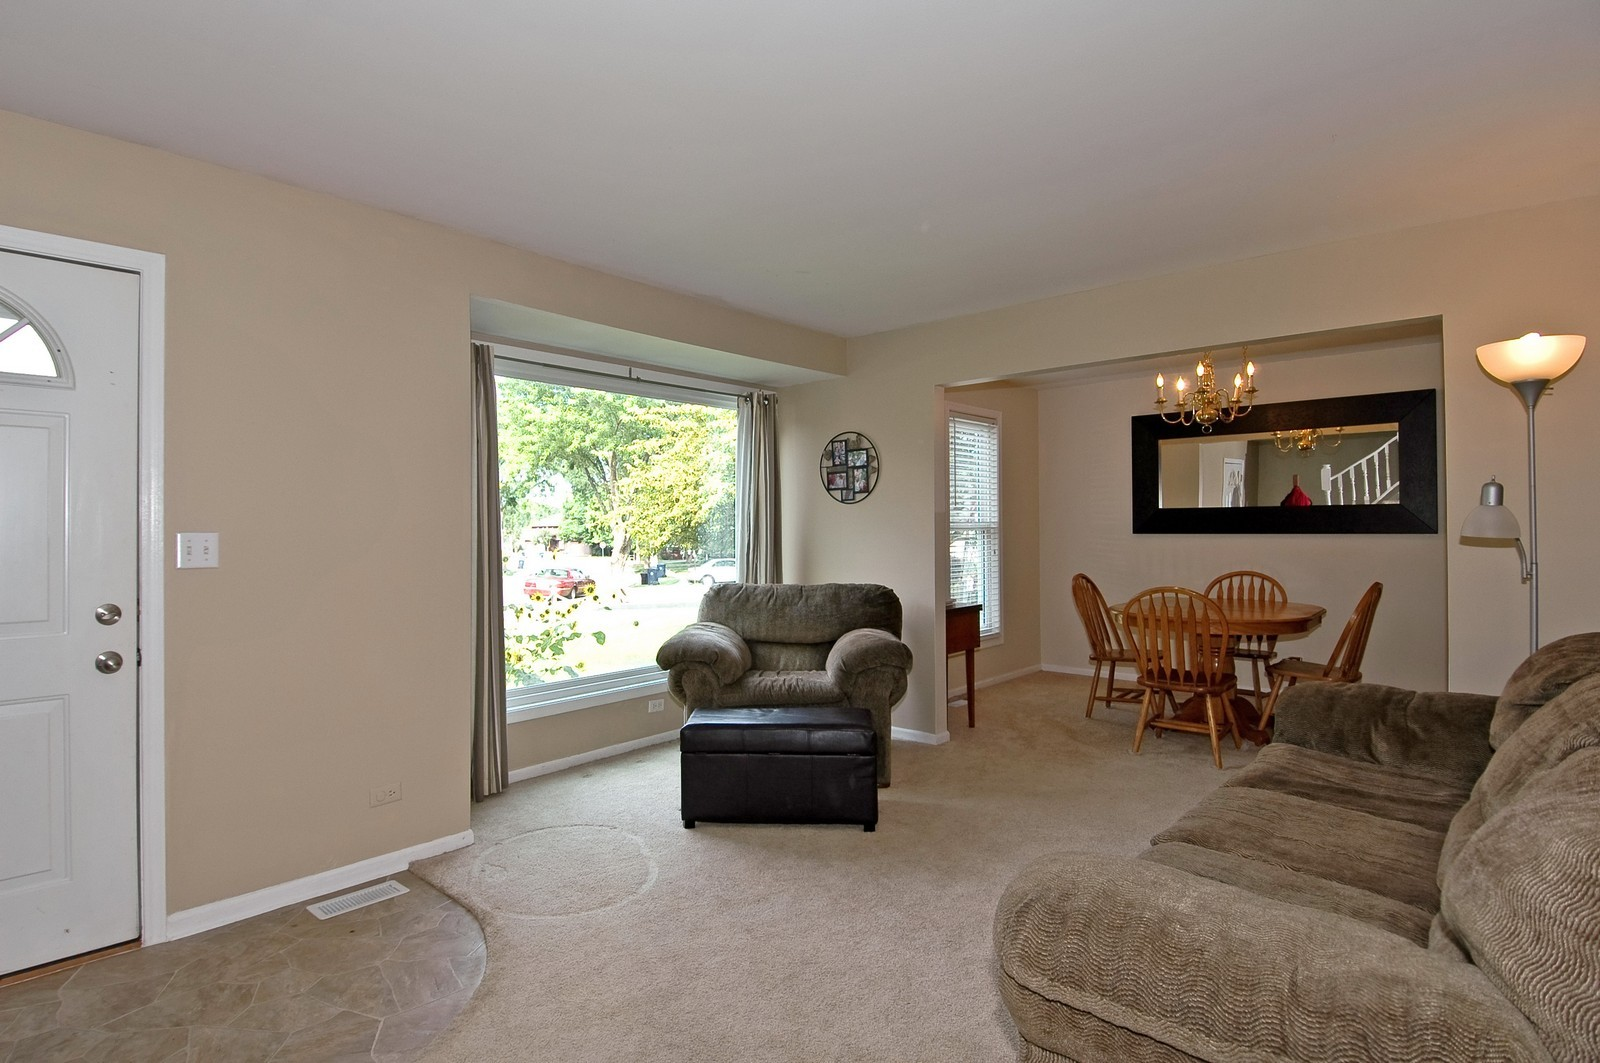 Real Estate Photography - 1055 Meghan Ave, Algonquin, IL, 60102 - Living Room / Dining Room